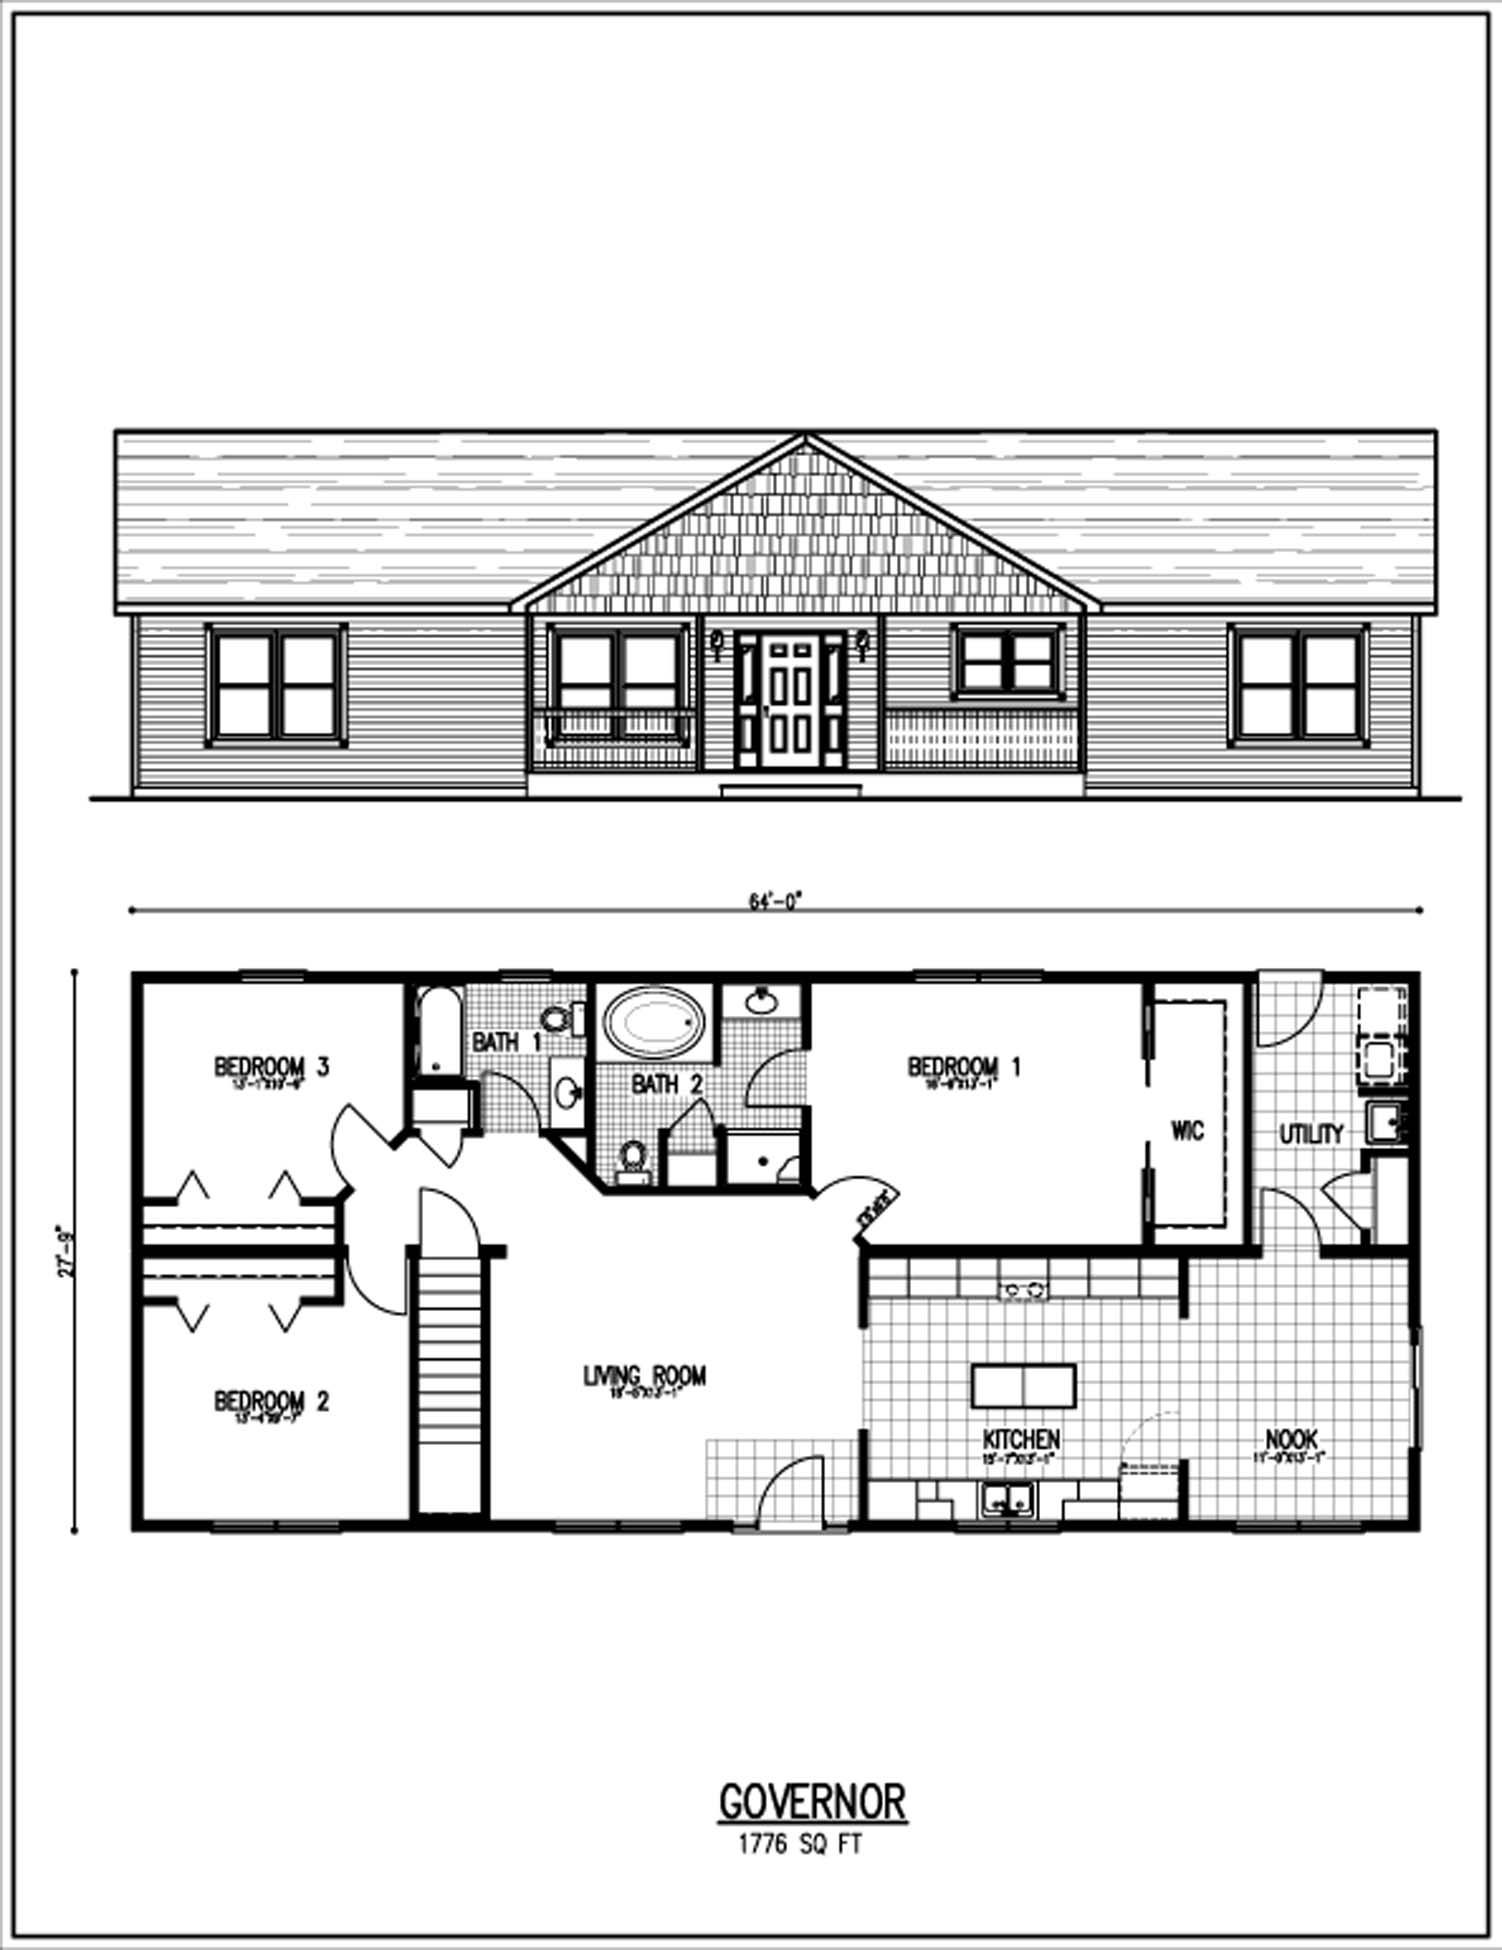 Floor plans by shawam082498 on pinterest floor plans Ranch house floor plan